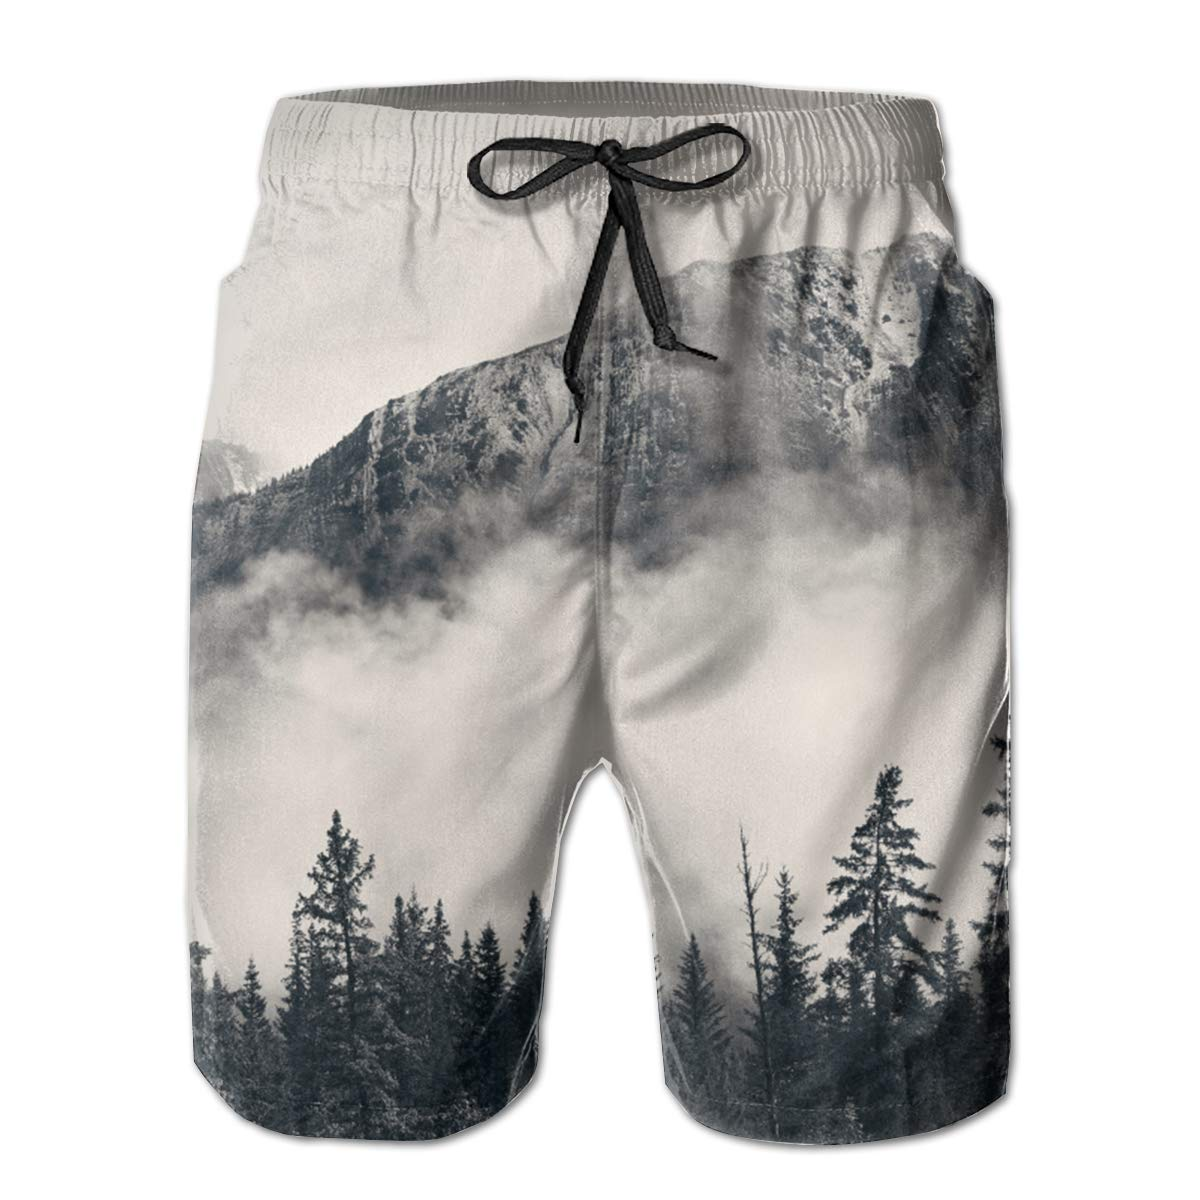 FASUWAVE Mens Swim Trunks Canadian Smokey Mountain Cliff Quick Dry Beach Board Shorts with Mesh Lining